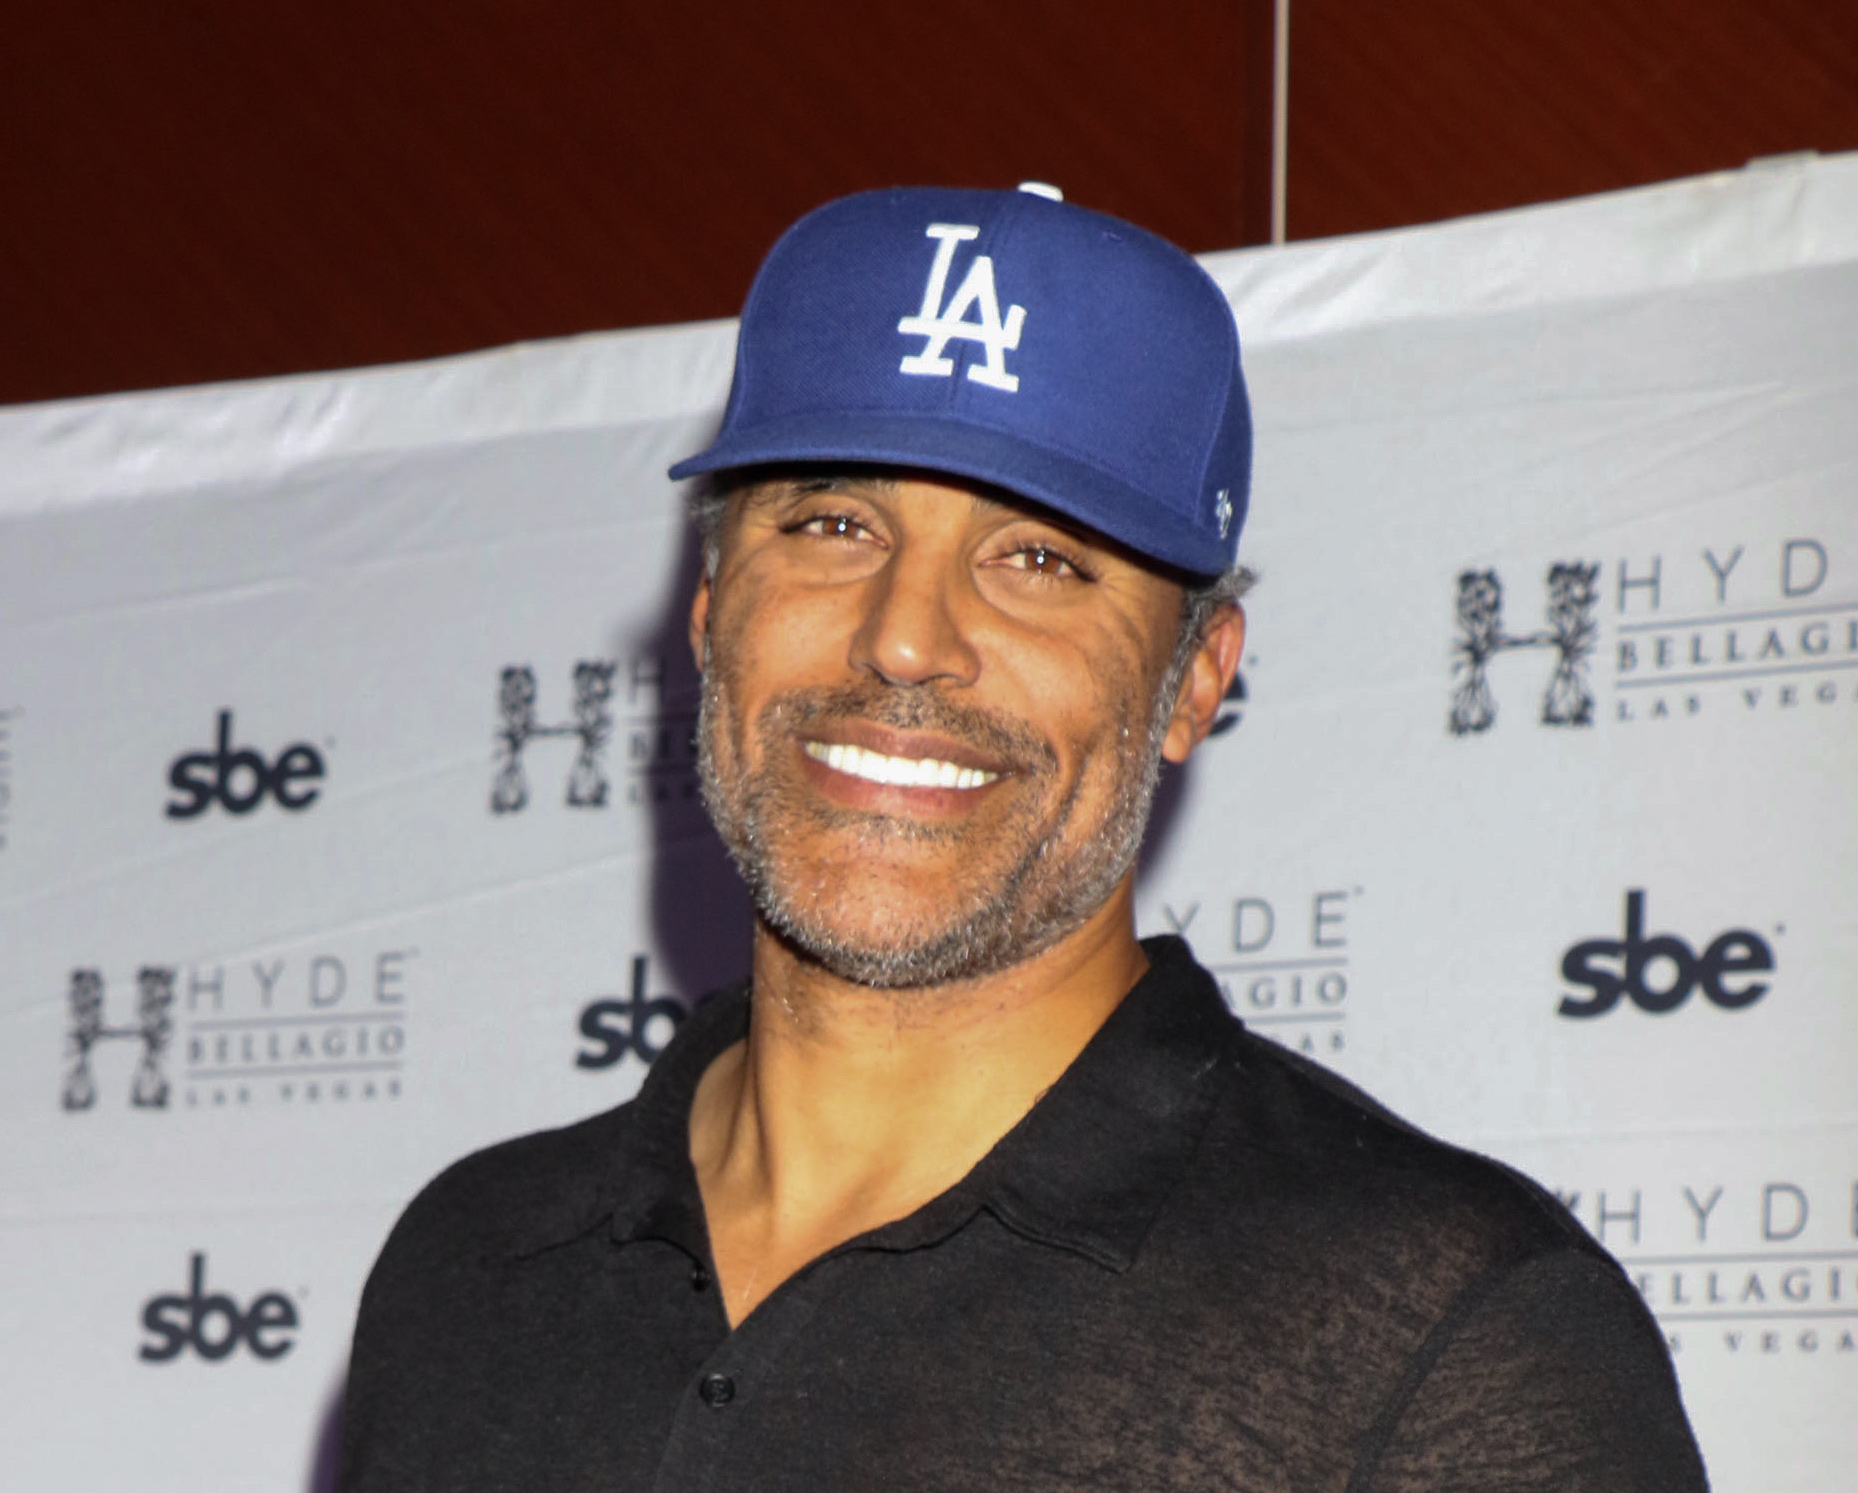 """10/13/2015 - Rick Fox - Rick Fox Guest DJs During """"Lost Angels Industry Night"""" at Hyde Bellagio Nightclub in Las Vegas - Hyde Bellagio Nightclub at the Bellagio Hotel & Casino - Las Vegas, NV, USA - Keywords: Vertical, Former NBA LA Lakers And Boston Celtics Player, Basketball, Athlete, Red Carpet Arrival, Celebrity, Celebrities, Man, Person, People, Arts Culture and Entertainment, Nevada Orientation: Portrait Face Count: 1 - False - Photo Credit: PRN / PRPhotos.com - Contact (1-866-551-7827) - Portrait Face Count: 1"""